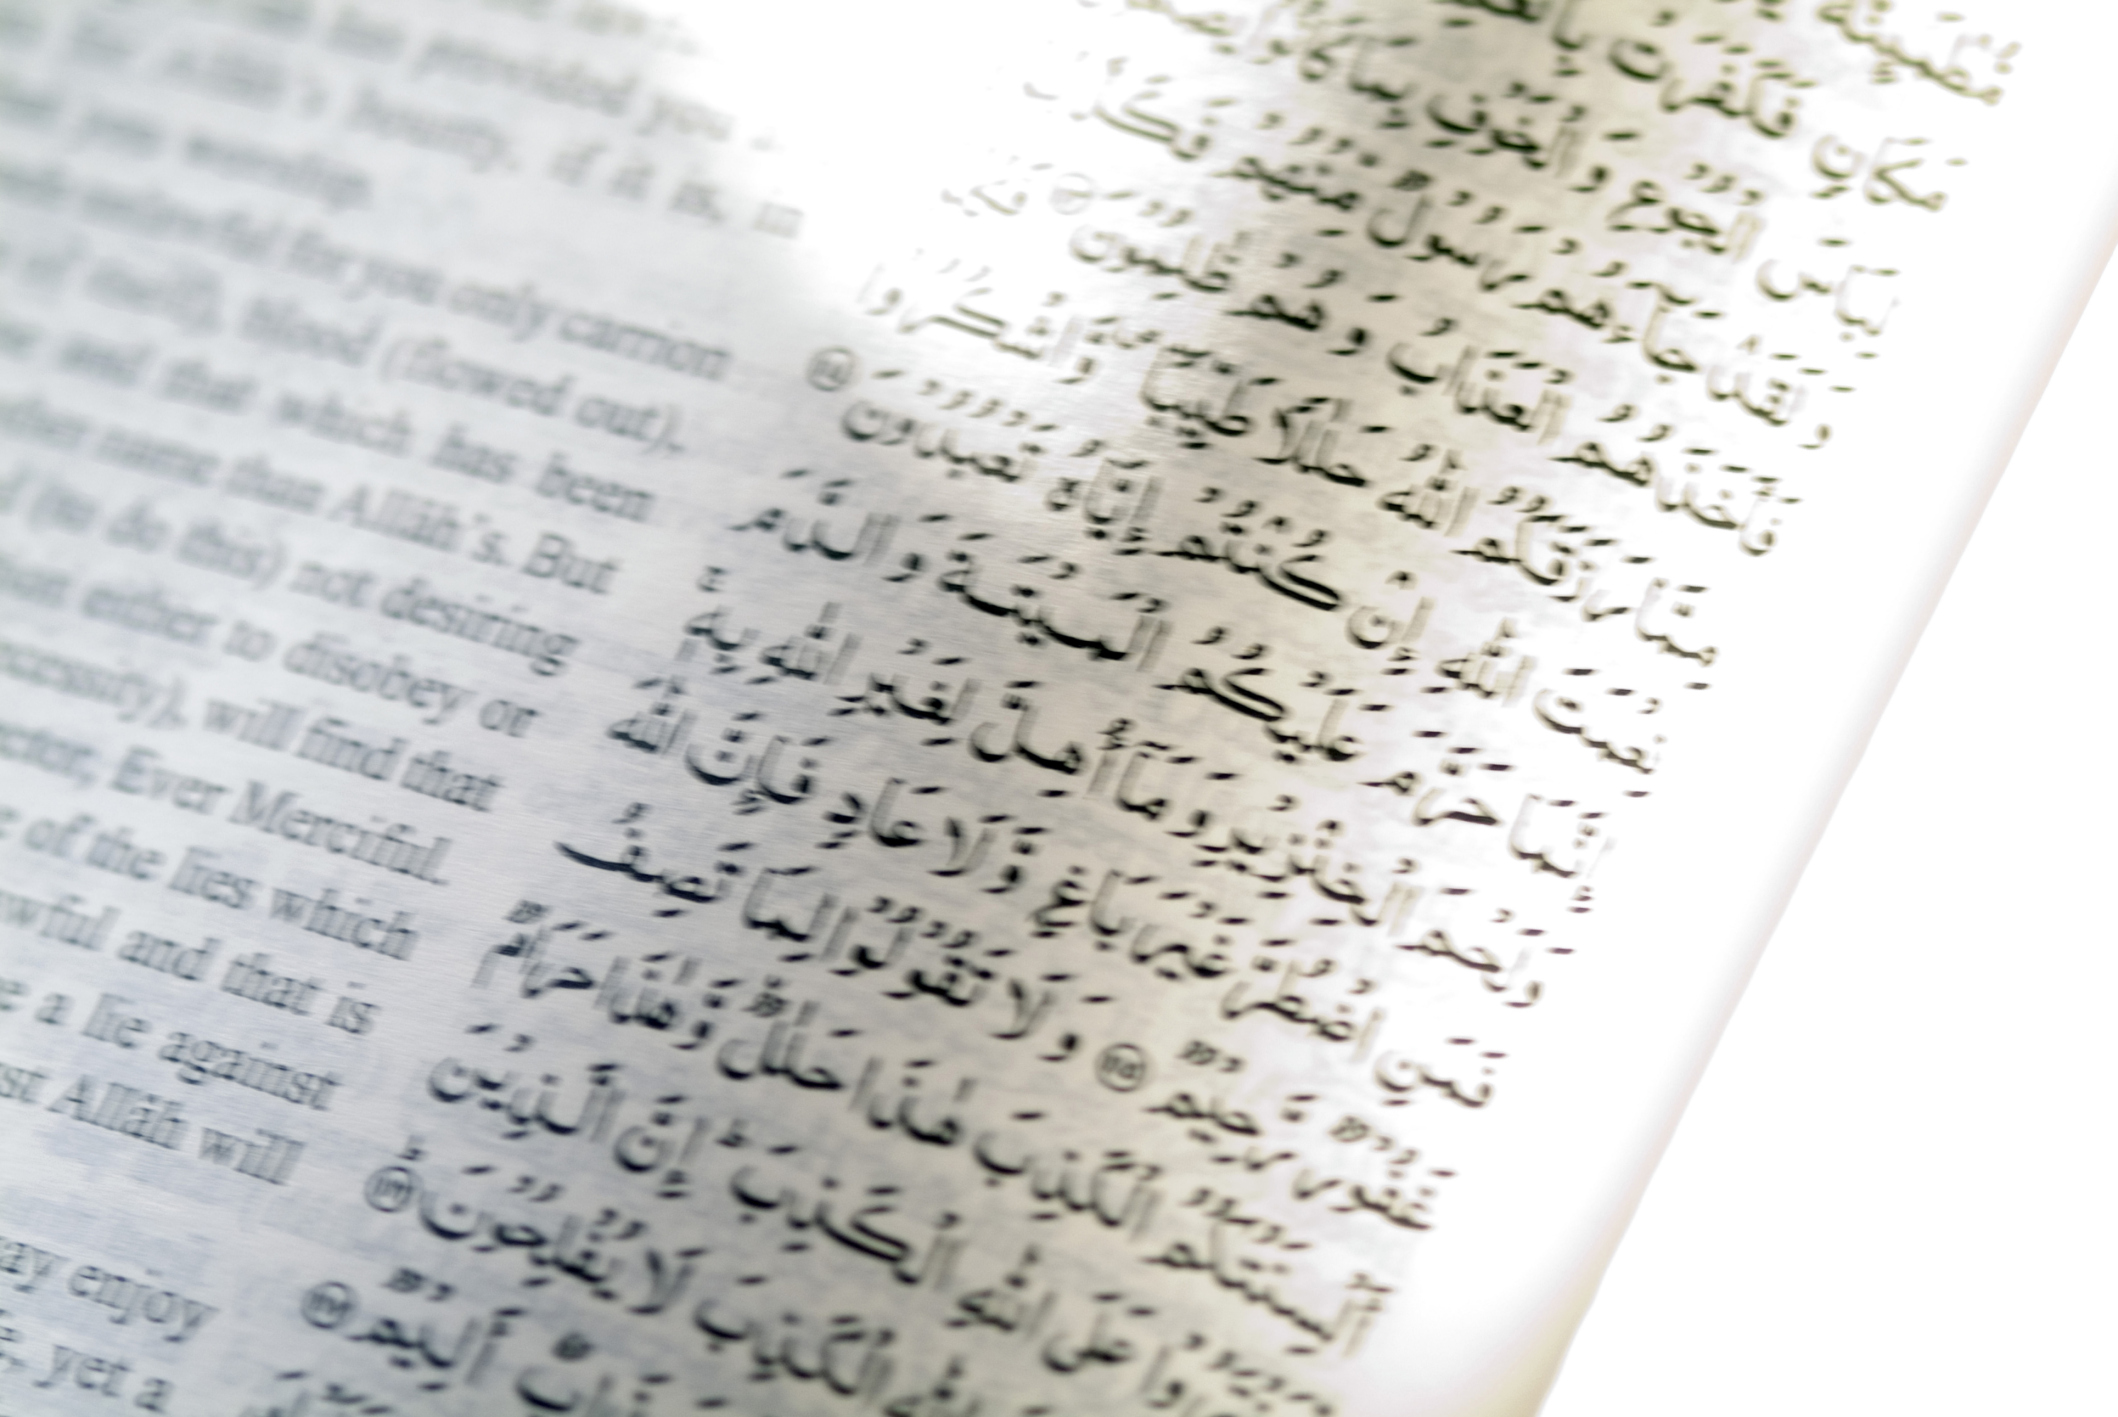 Close-up of text in the Koran